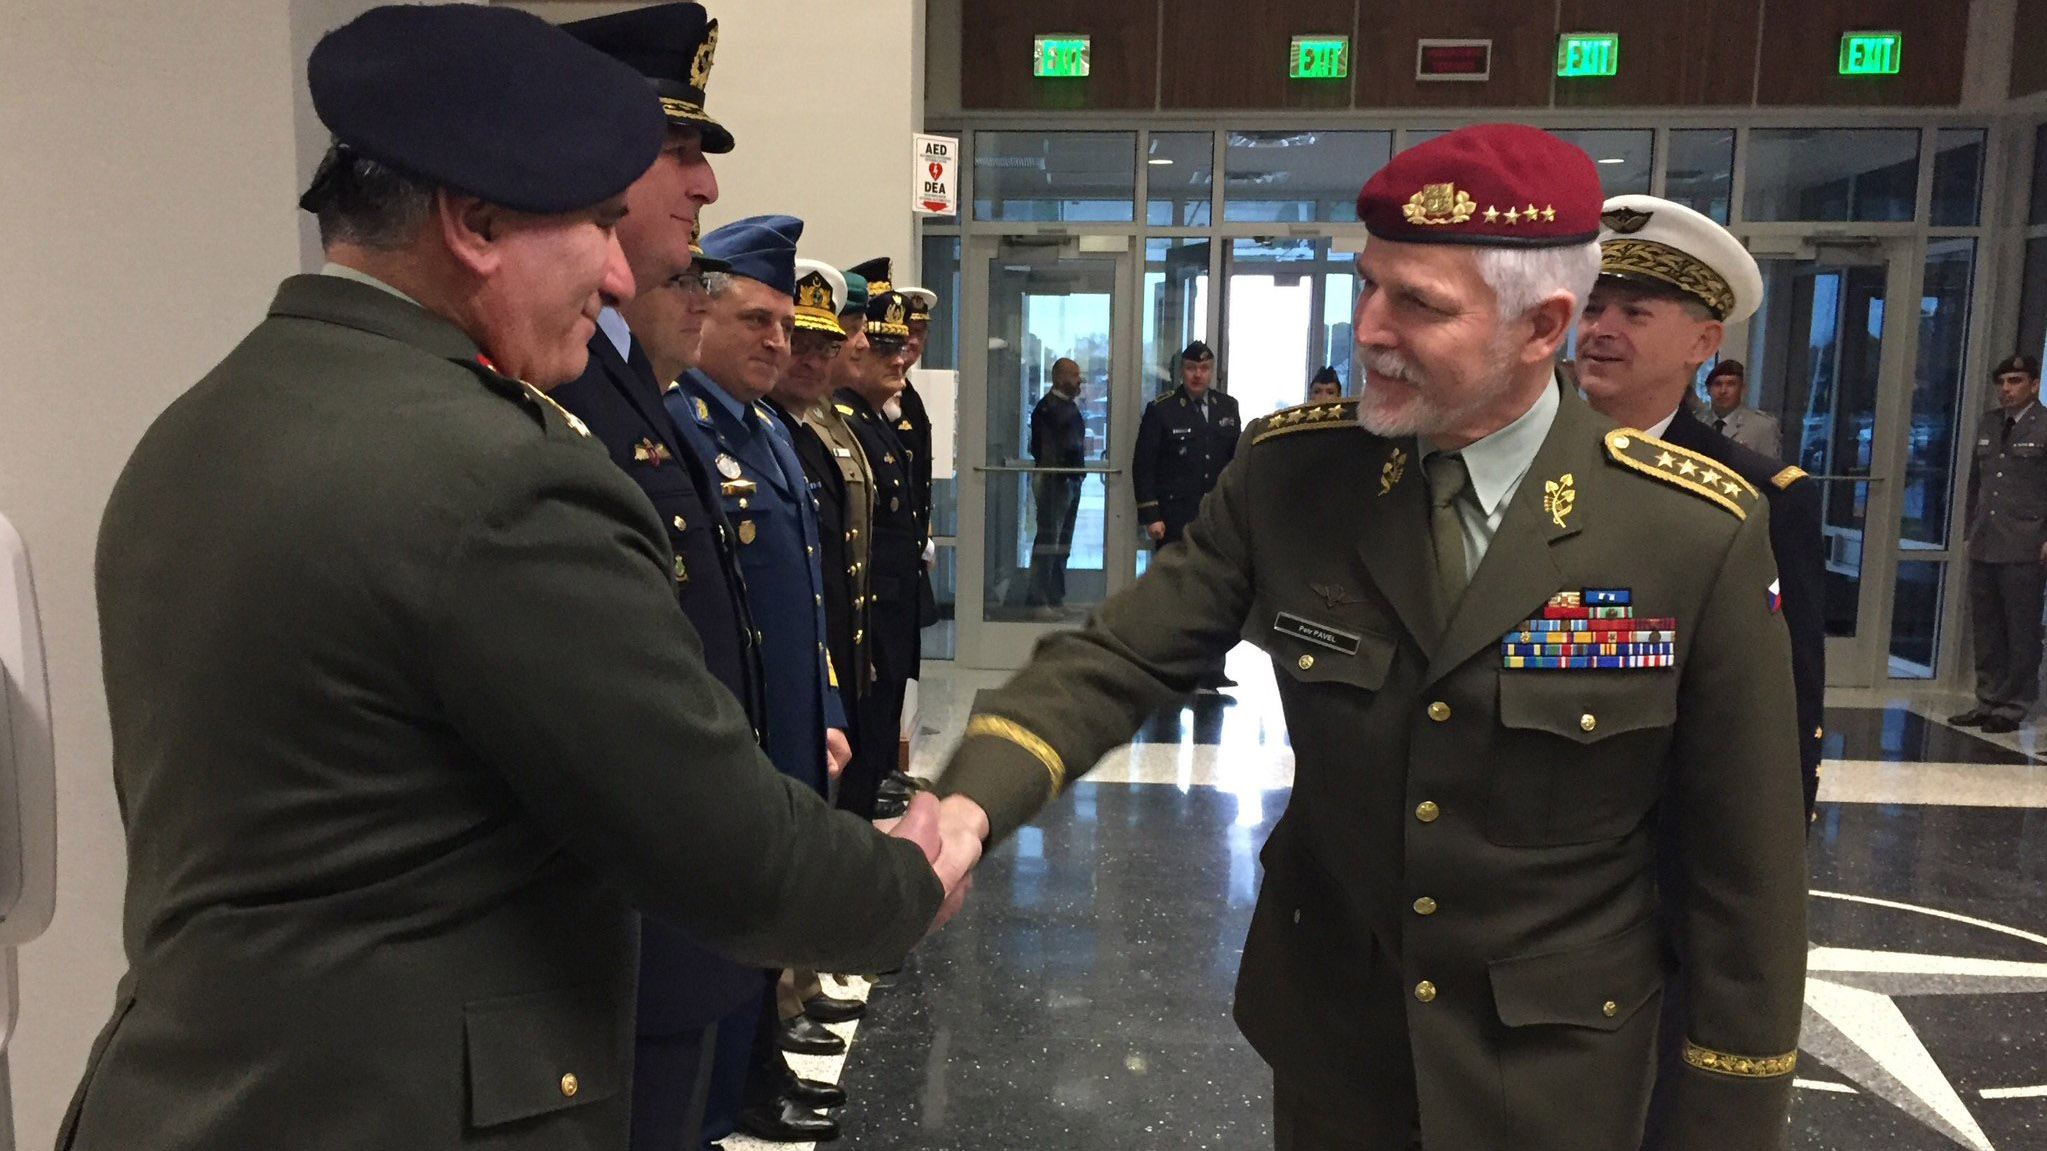 Chairman of NATO Military Committee Visits Allied Command Transformation